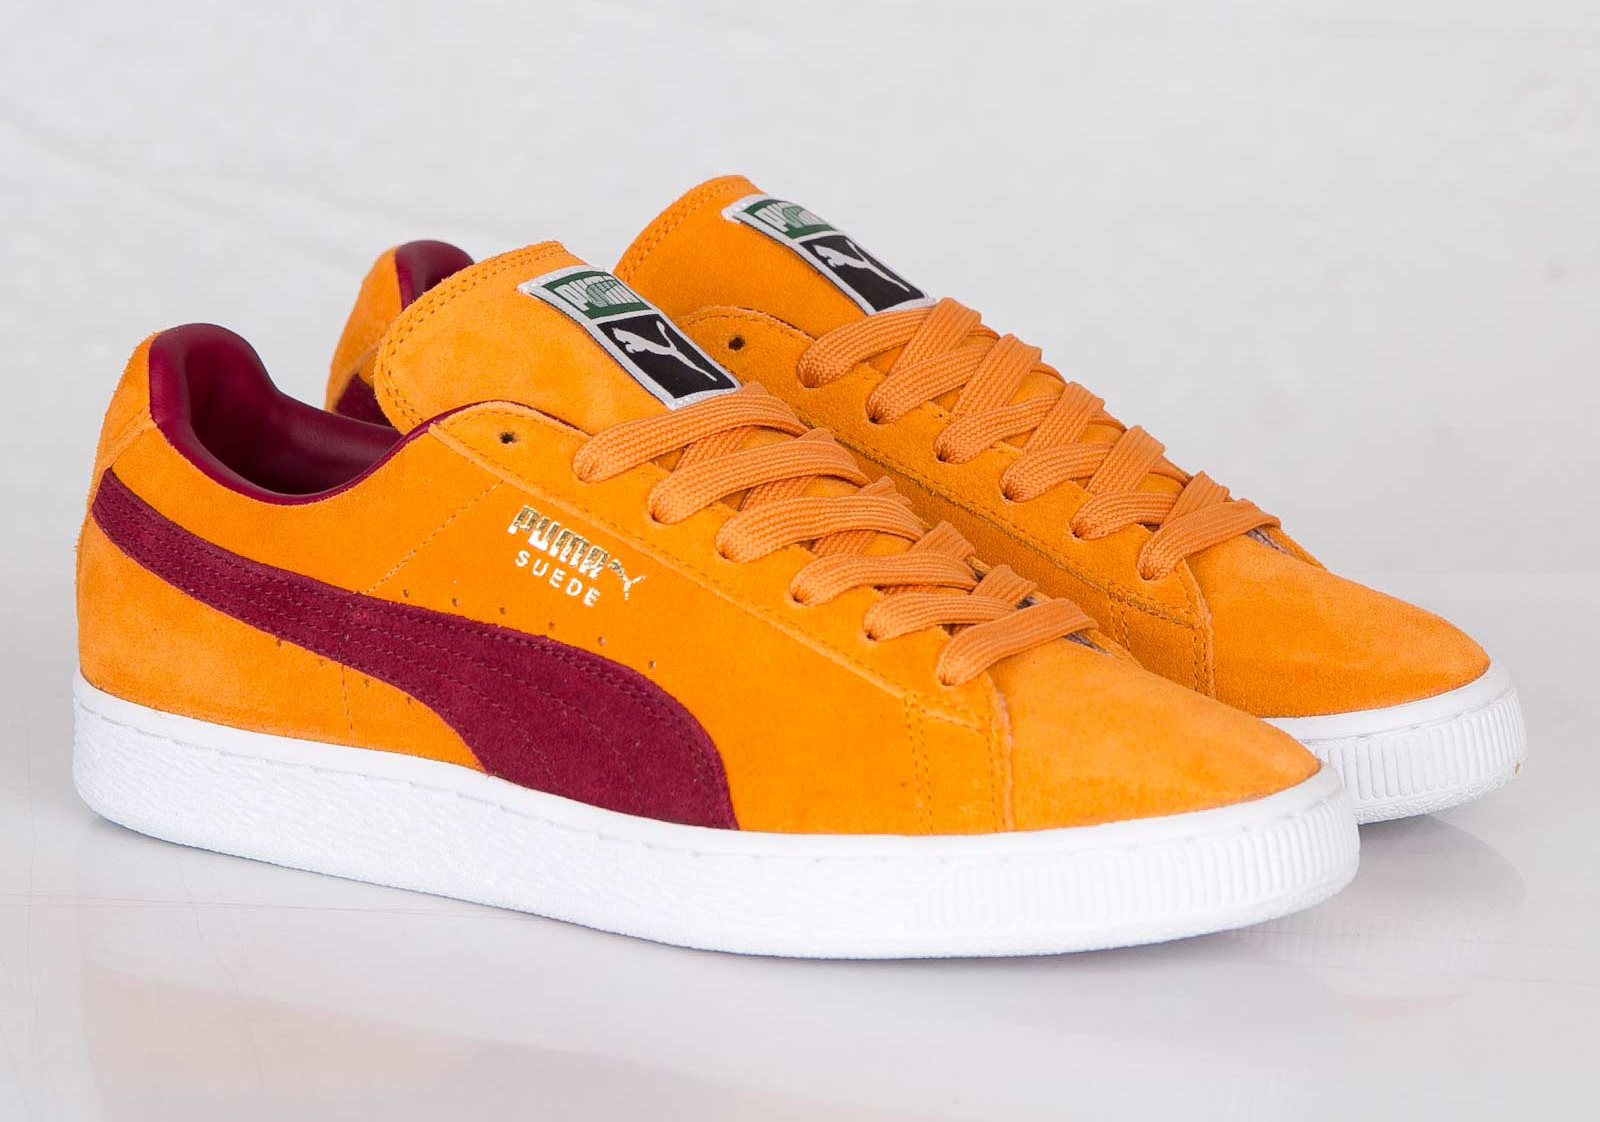 puma suede classic bright marigold pomegranate. Black Bedroom Furniture Sets. Home Design Ideas